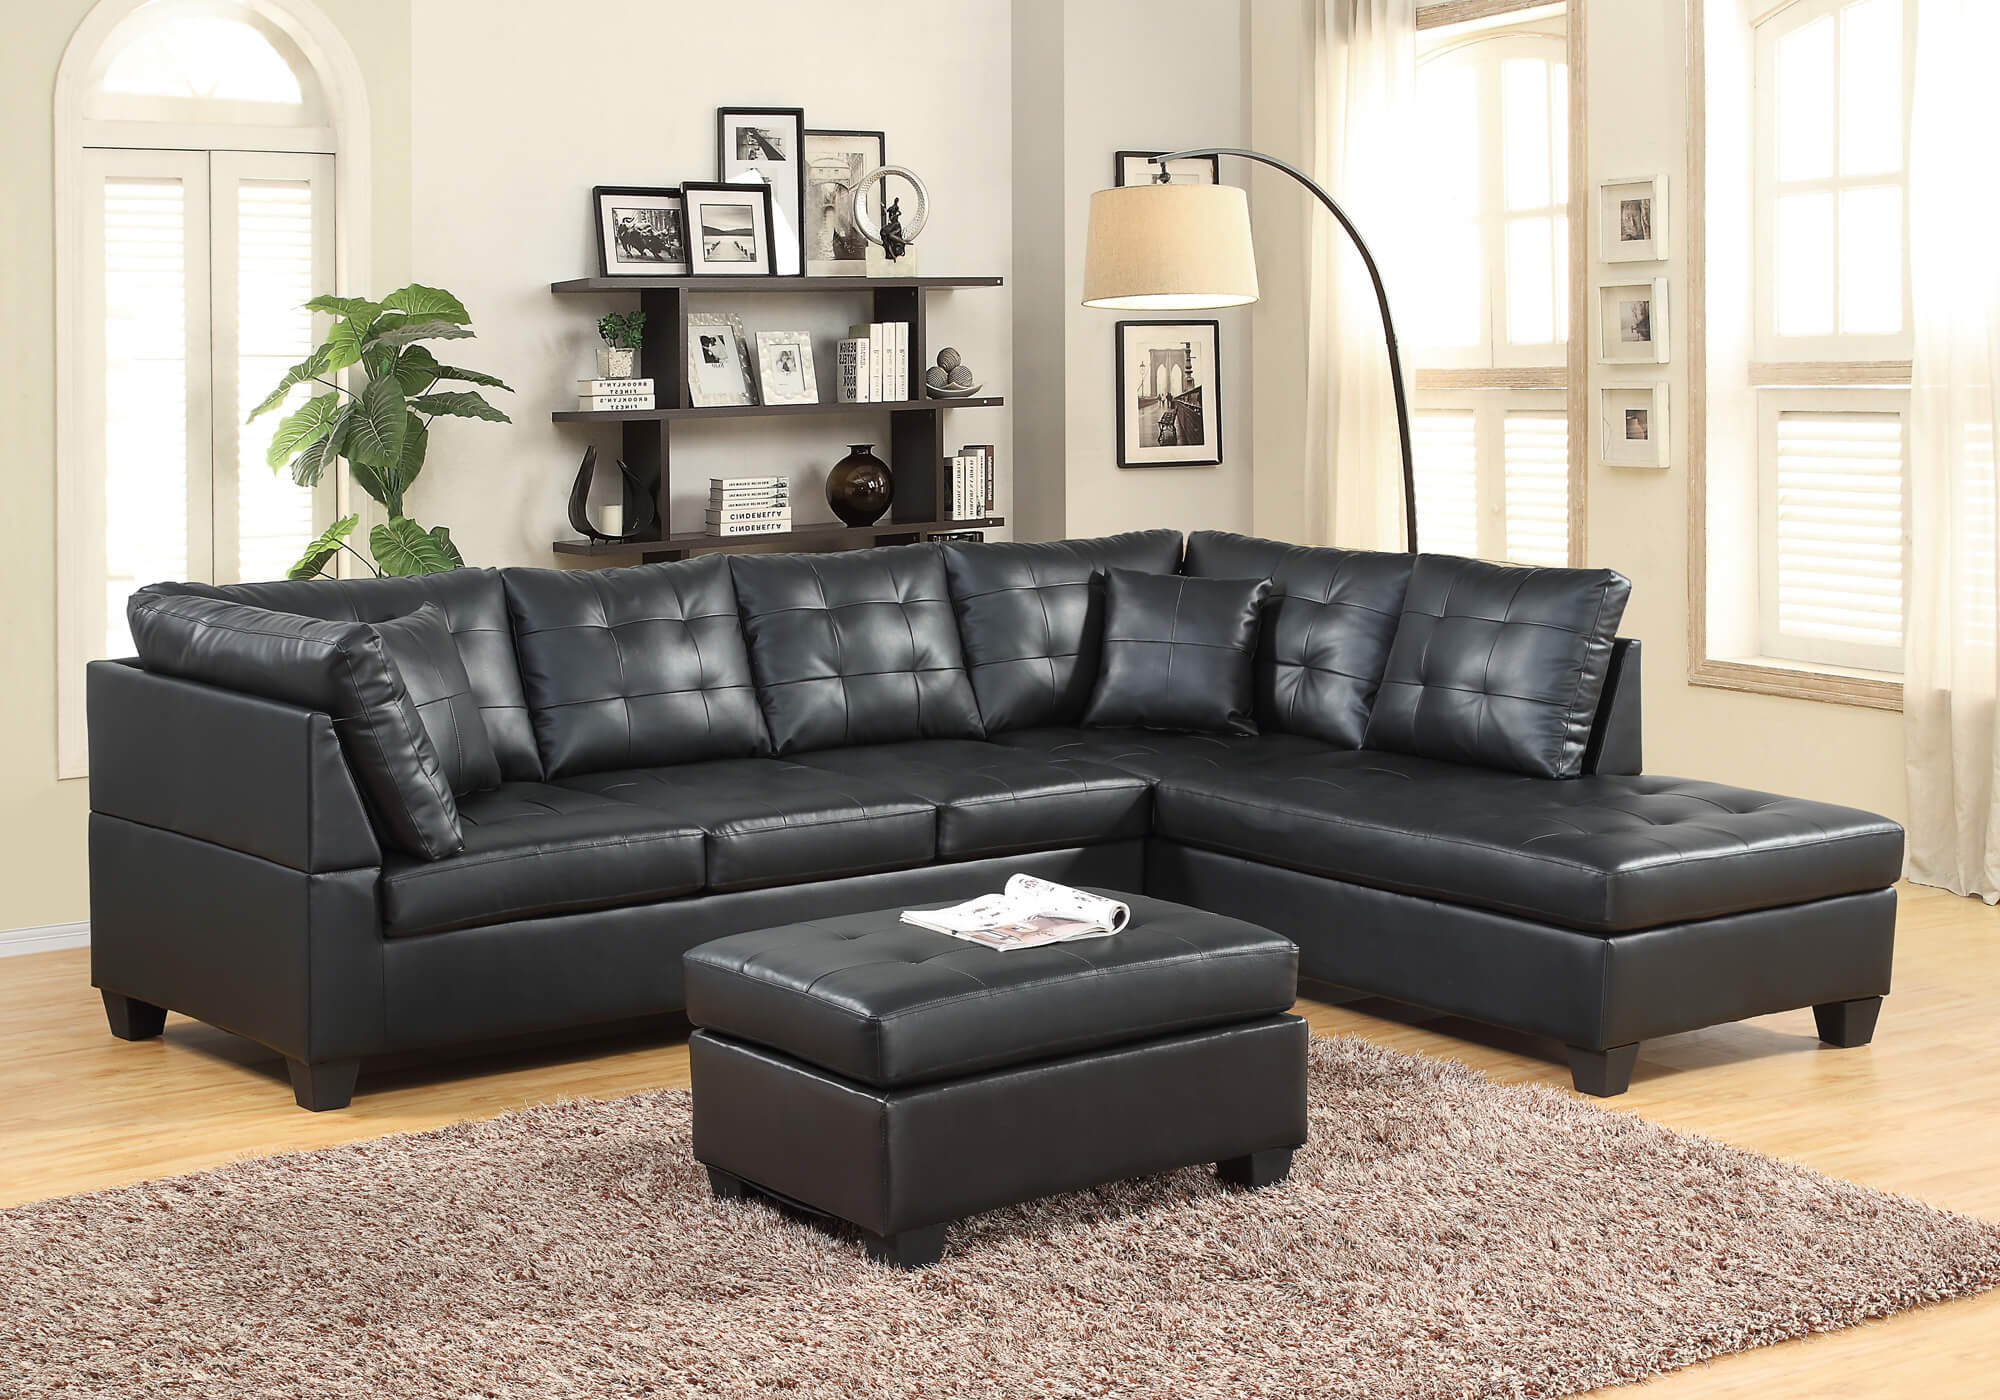 Black leather like sectiona sectional sofa sets for Black living room furniture